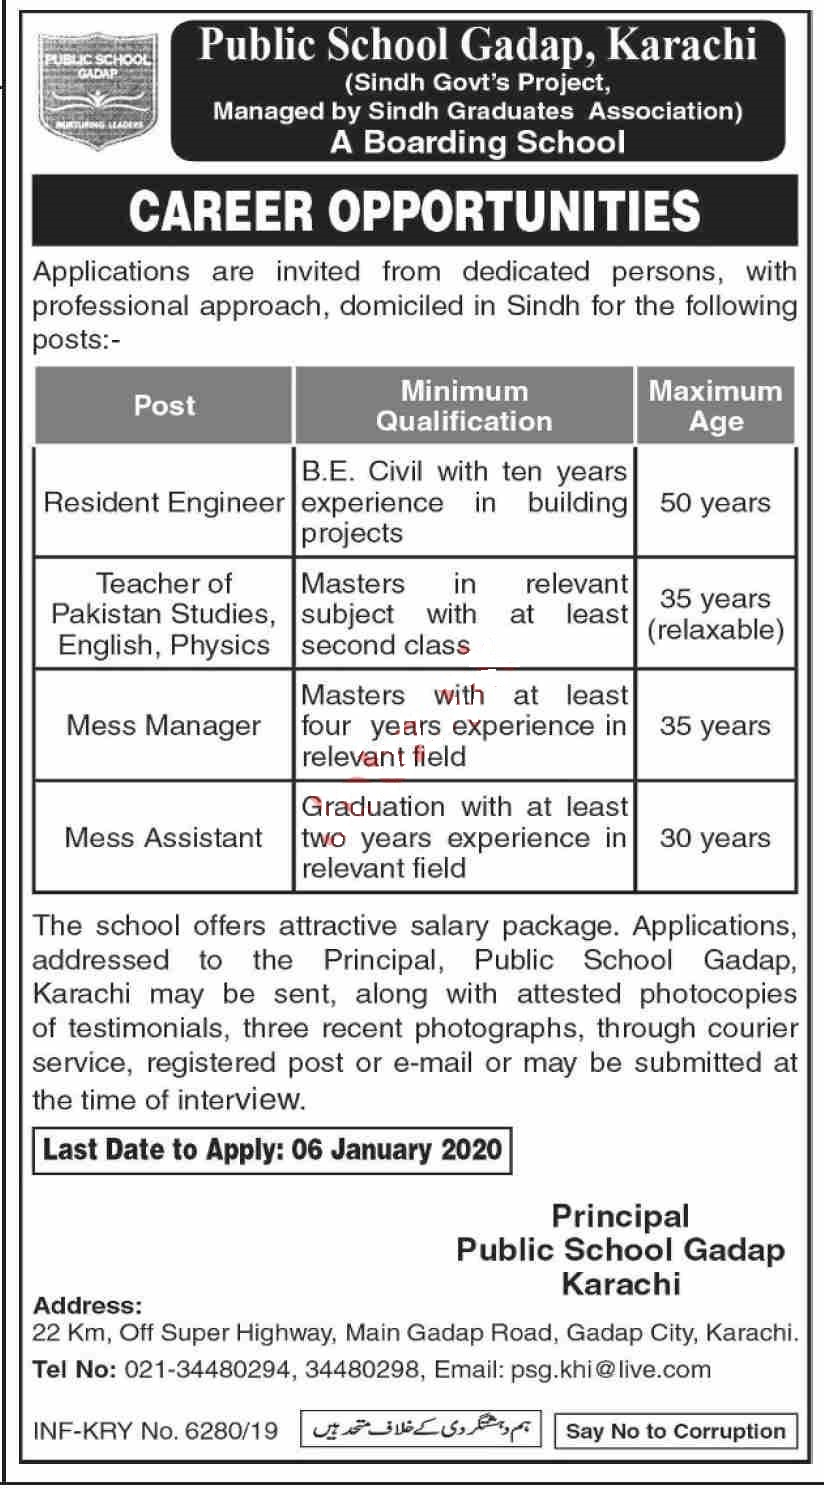 Public School Gadap Karachi Jobs 2020 for Teacher & Mess Manager